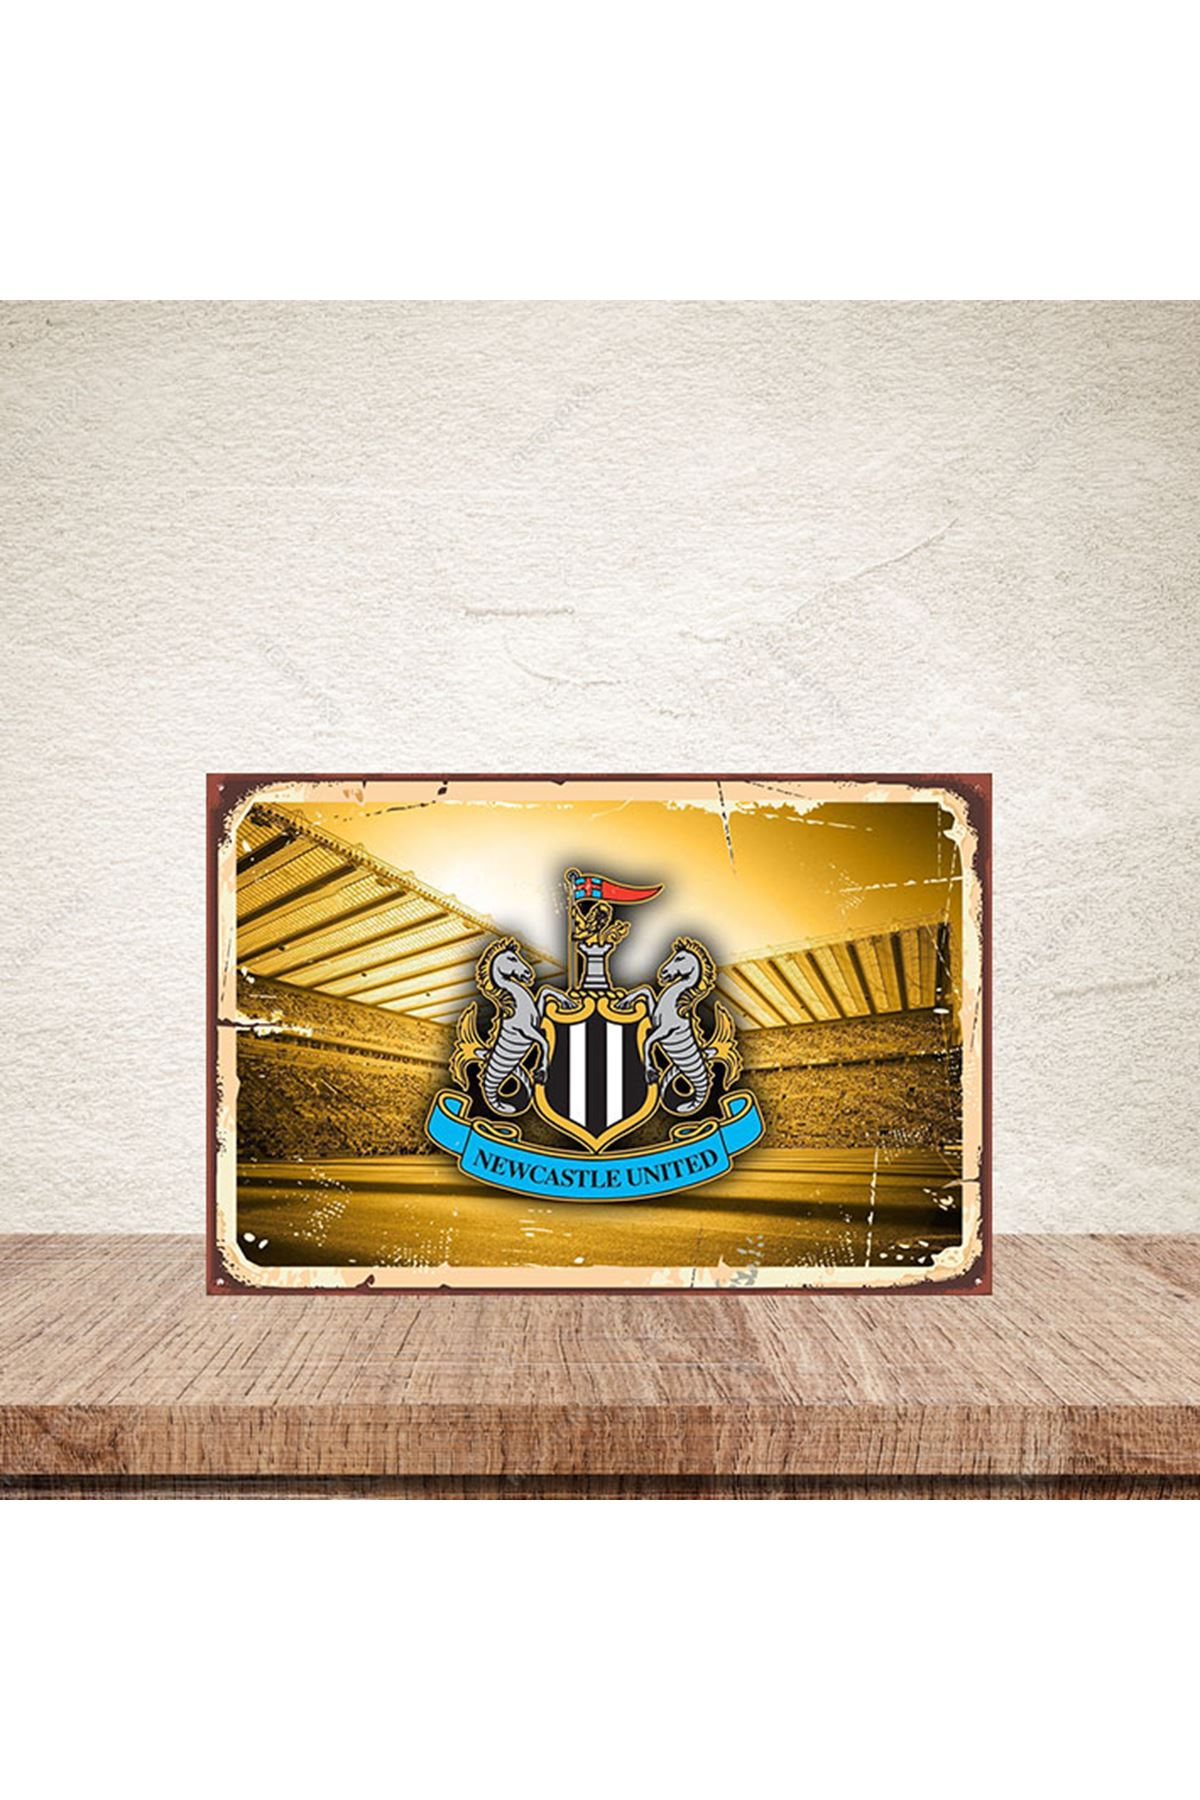 NEWCASTLE UNITED -AHŞAP POSTER